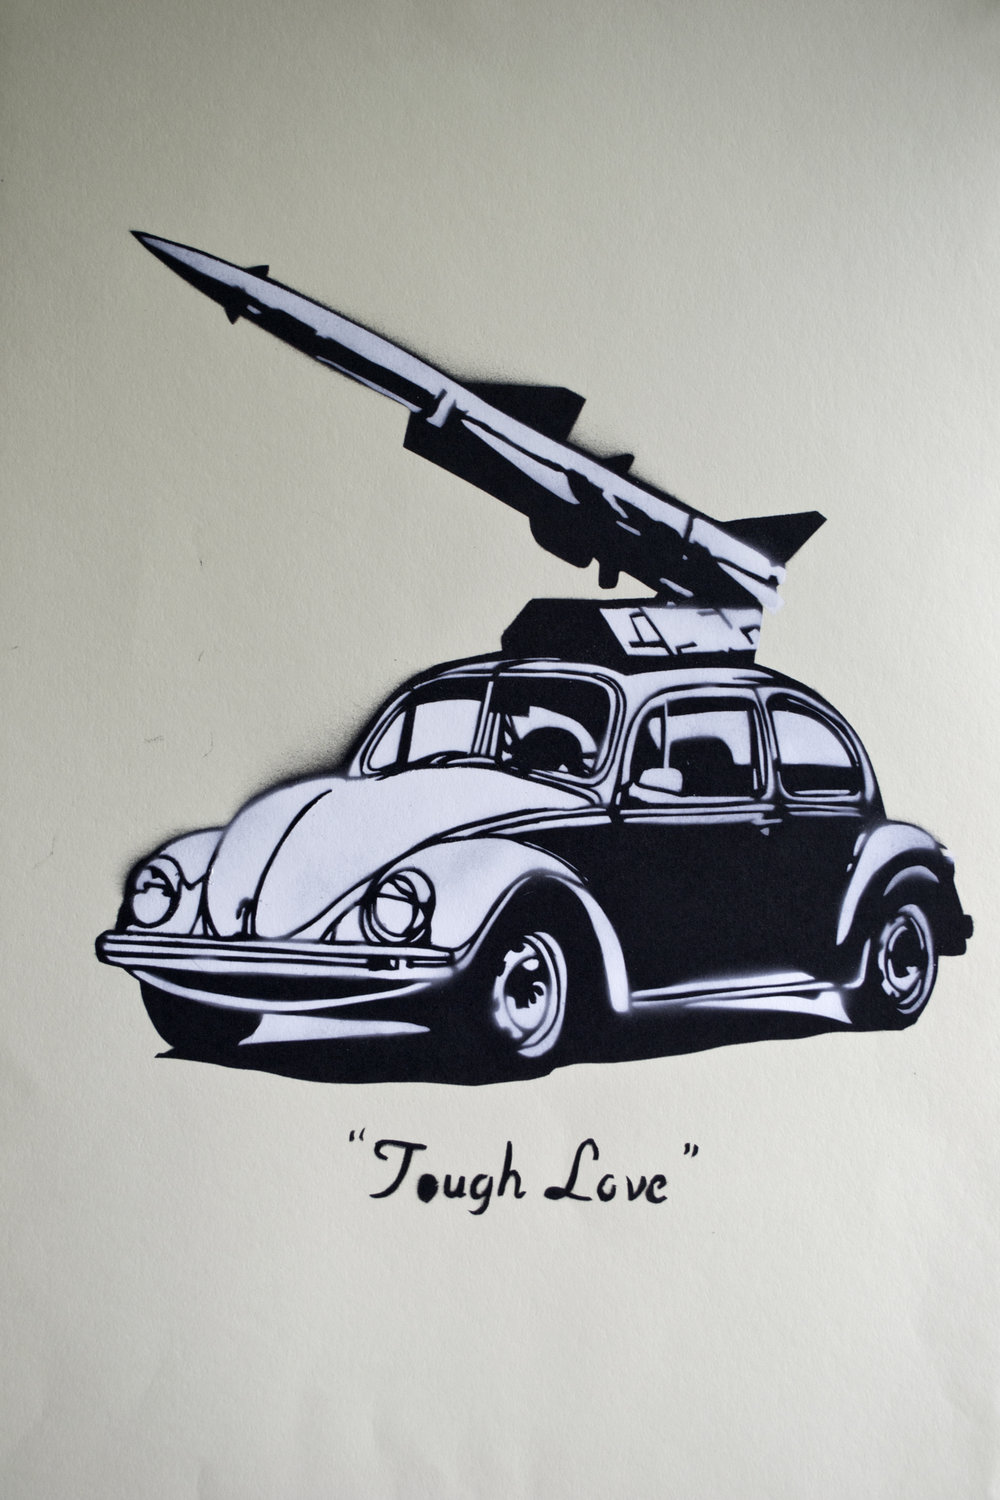 Tough Love  Spray Stencil  2016